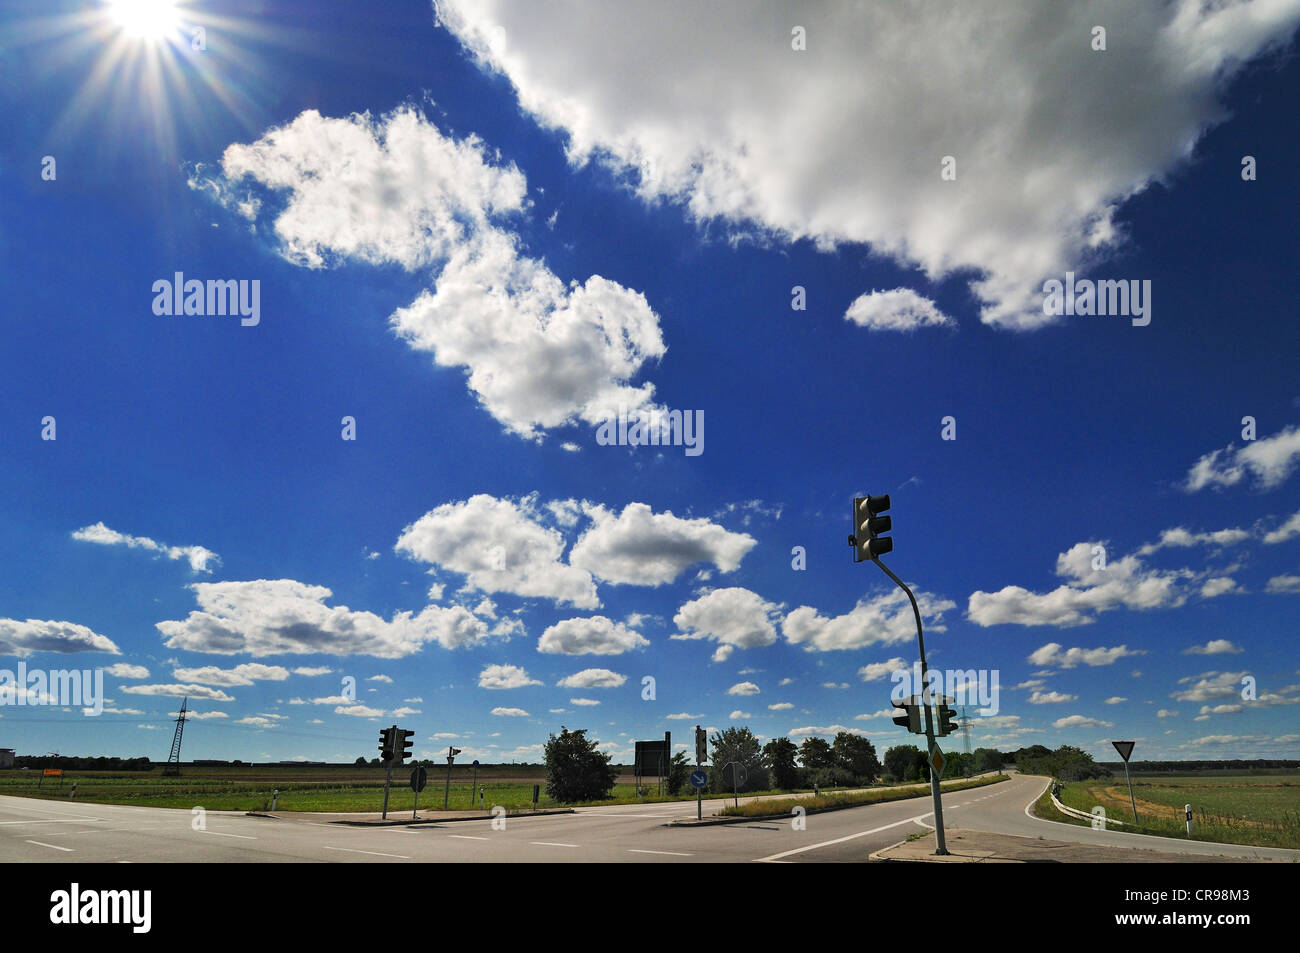 Blue sky with fleecy clouds and traffic lights, Garching near Munich, Bavaria, Germany, Europe - Stock Image